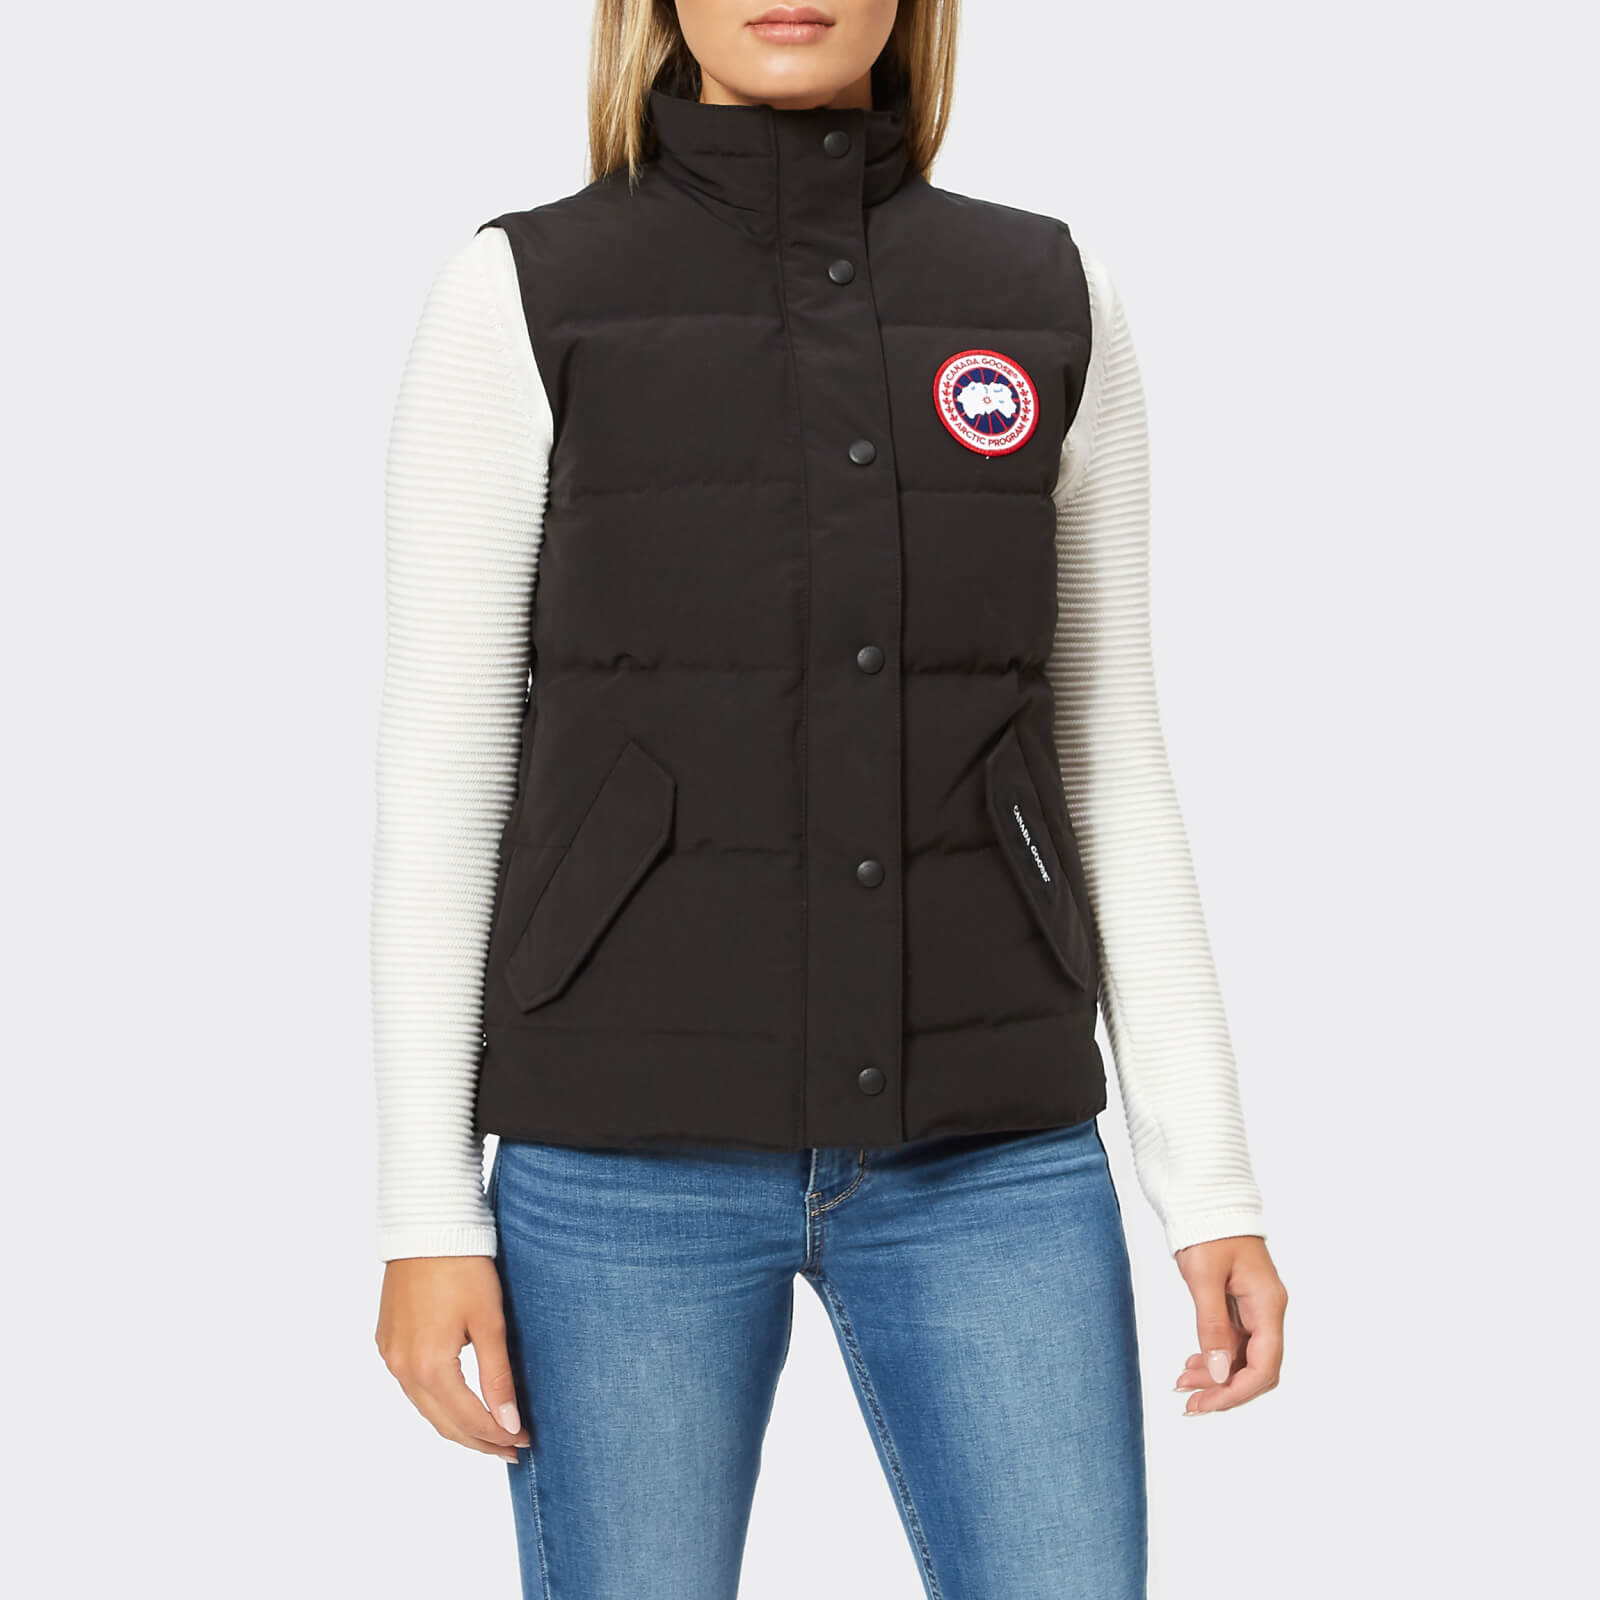 3737b9c11150 Canada Goose Women s Freestyle Vest - Black - Free UK Delivery over £50